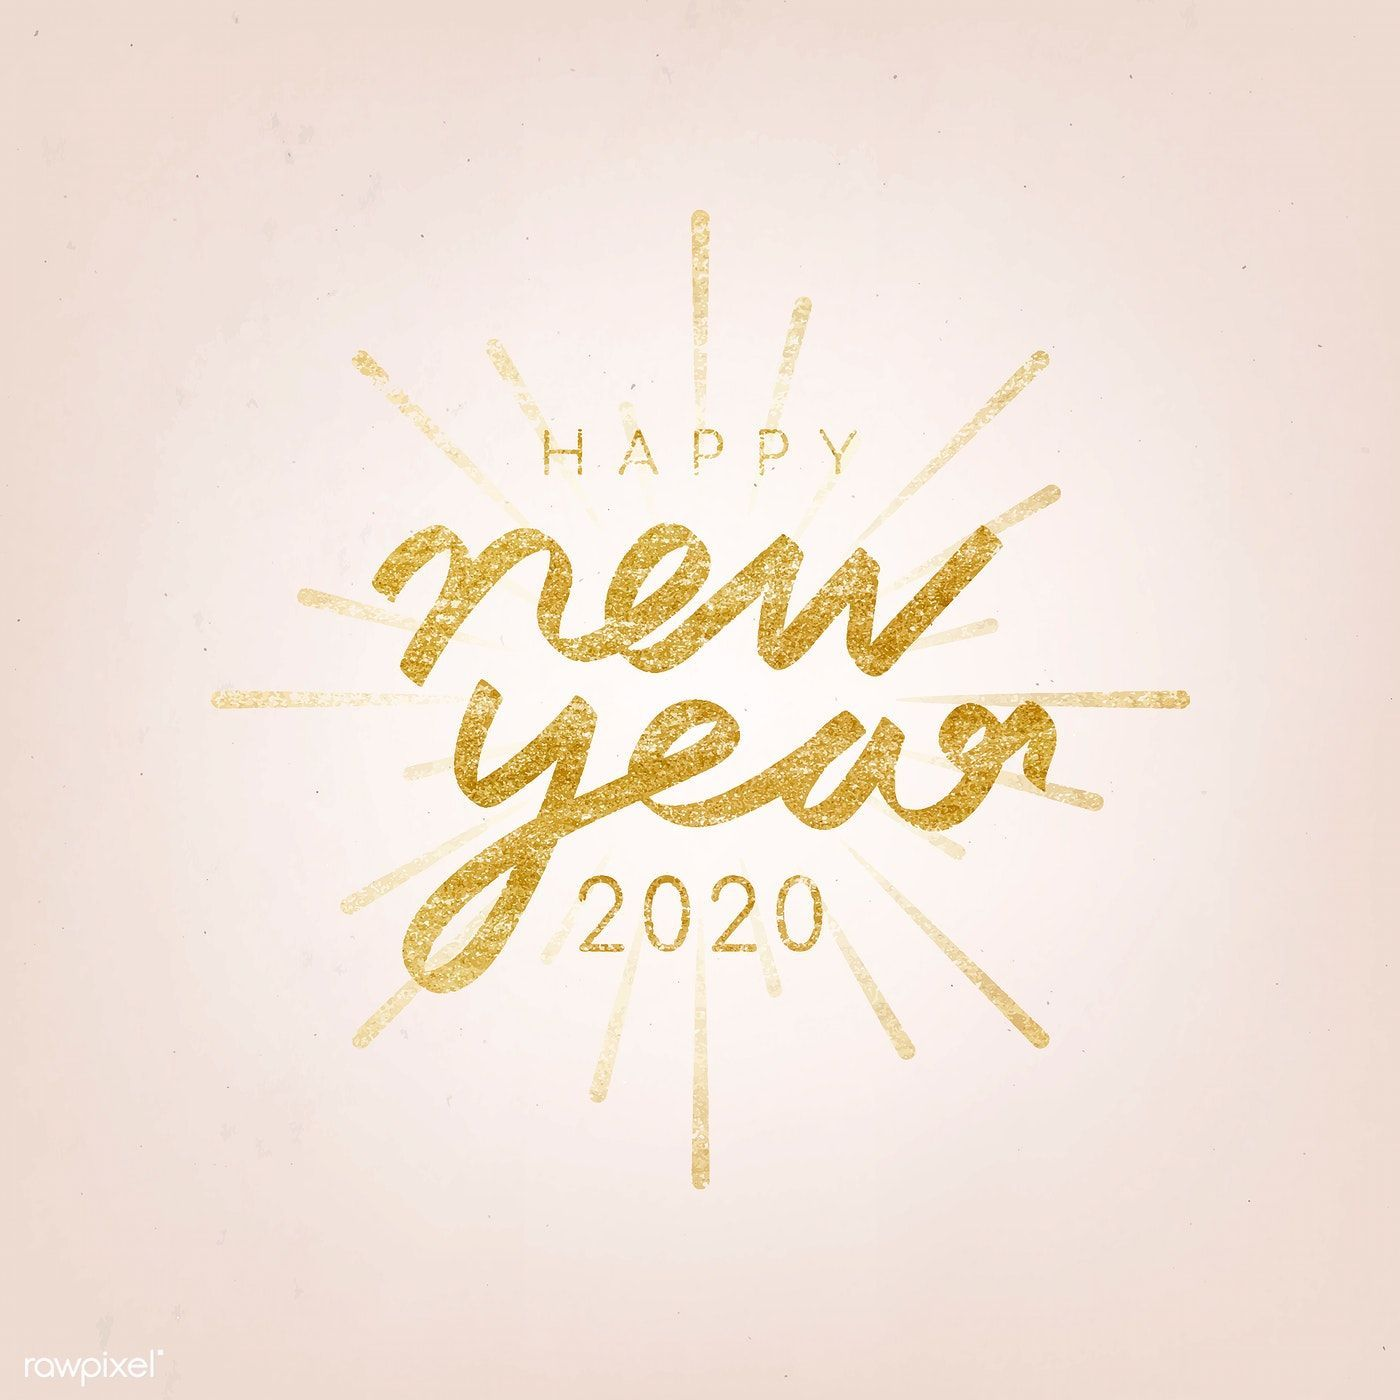 Happy New Year 2020 vector | free image by rawpixel.com / NingZk V. #happynewyear2020quotes